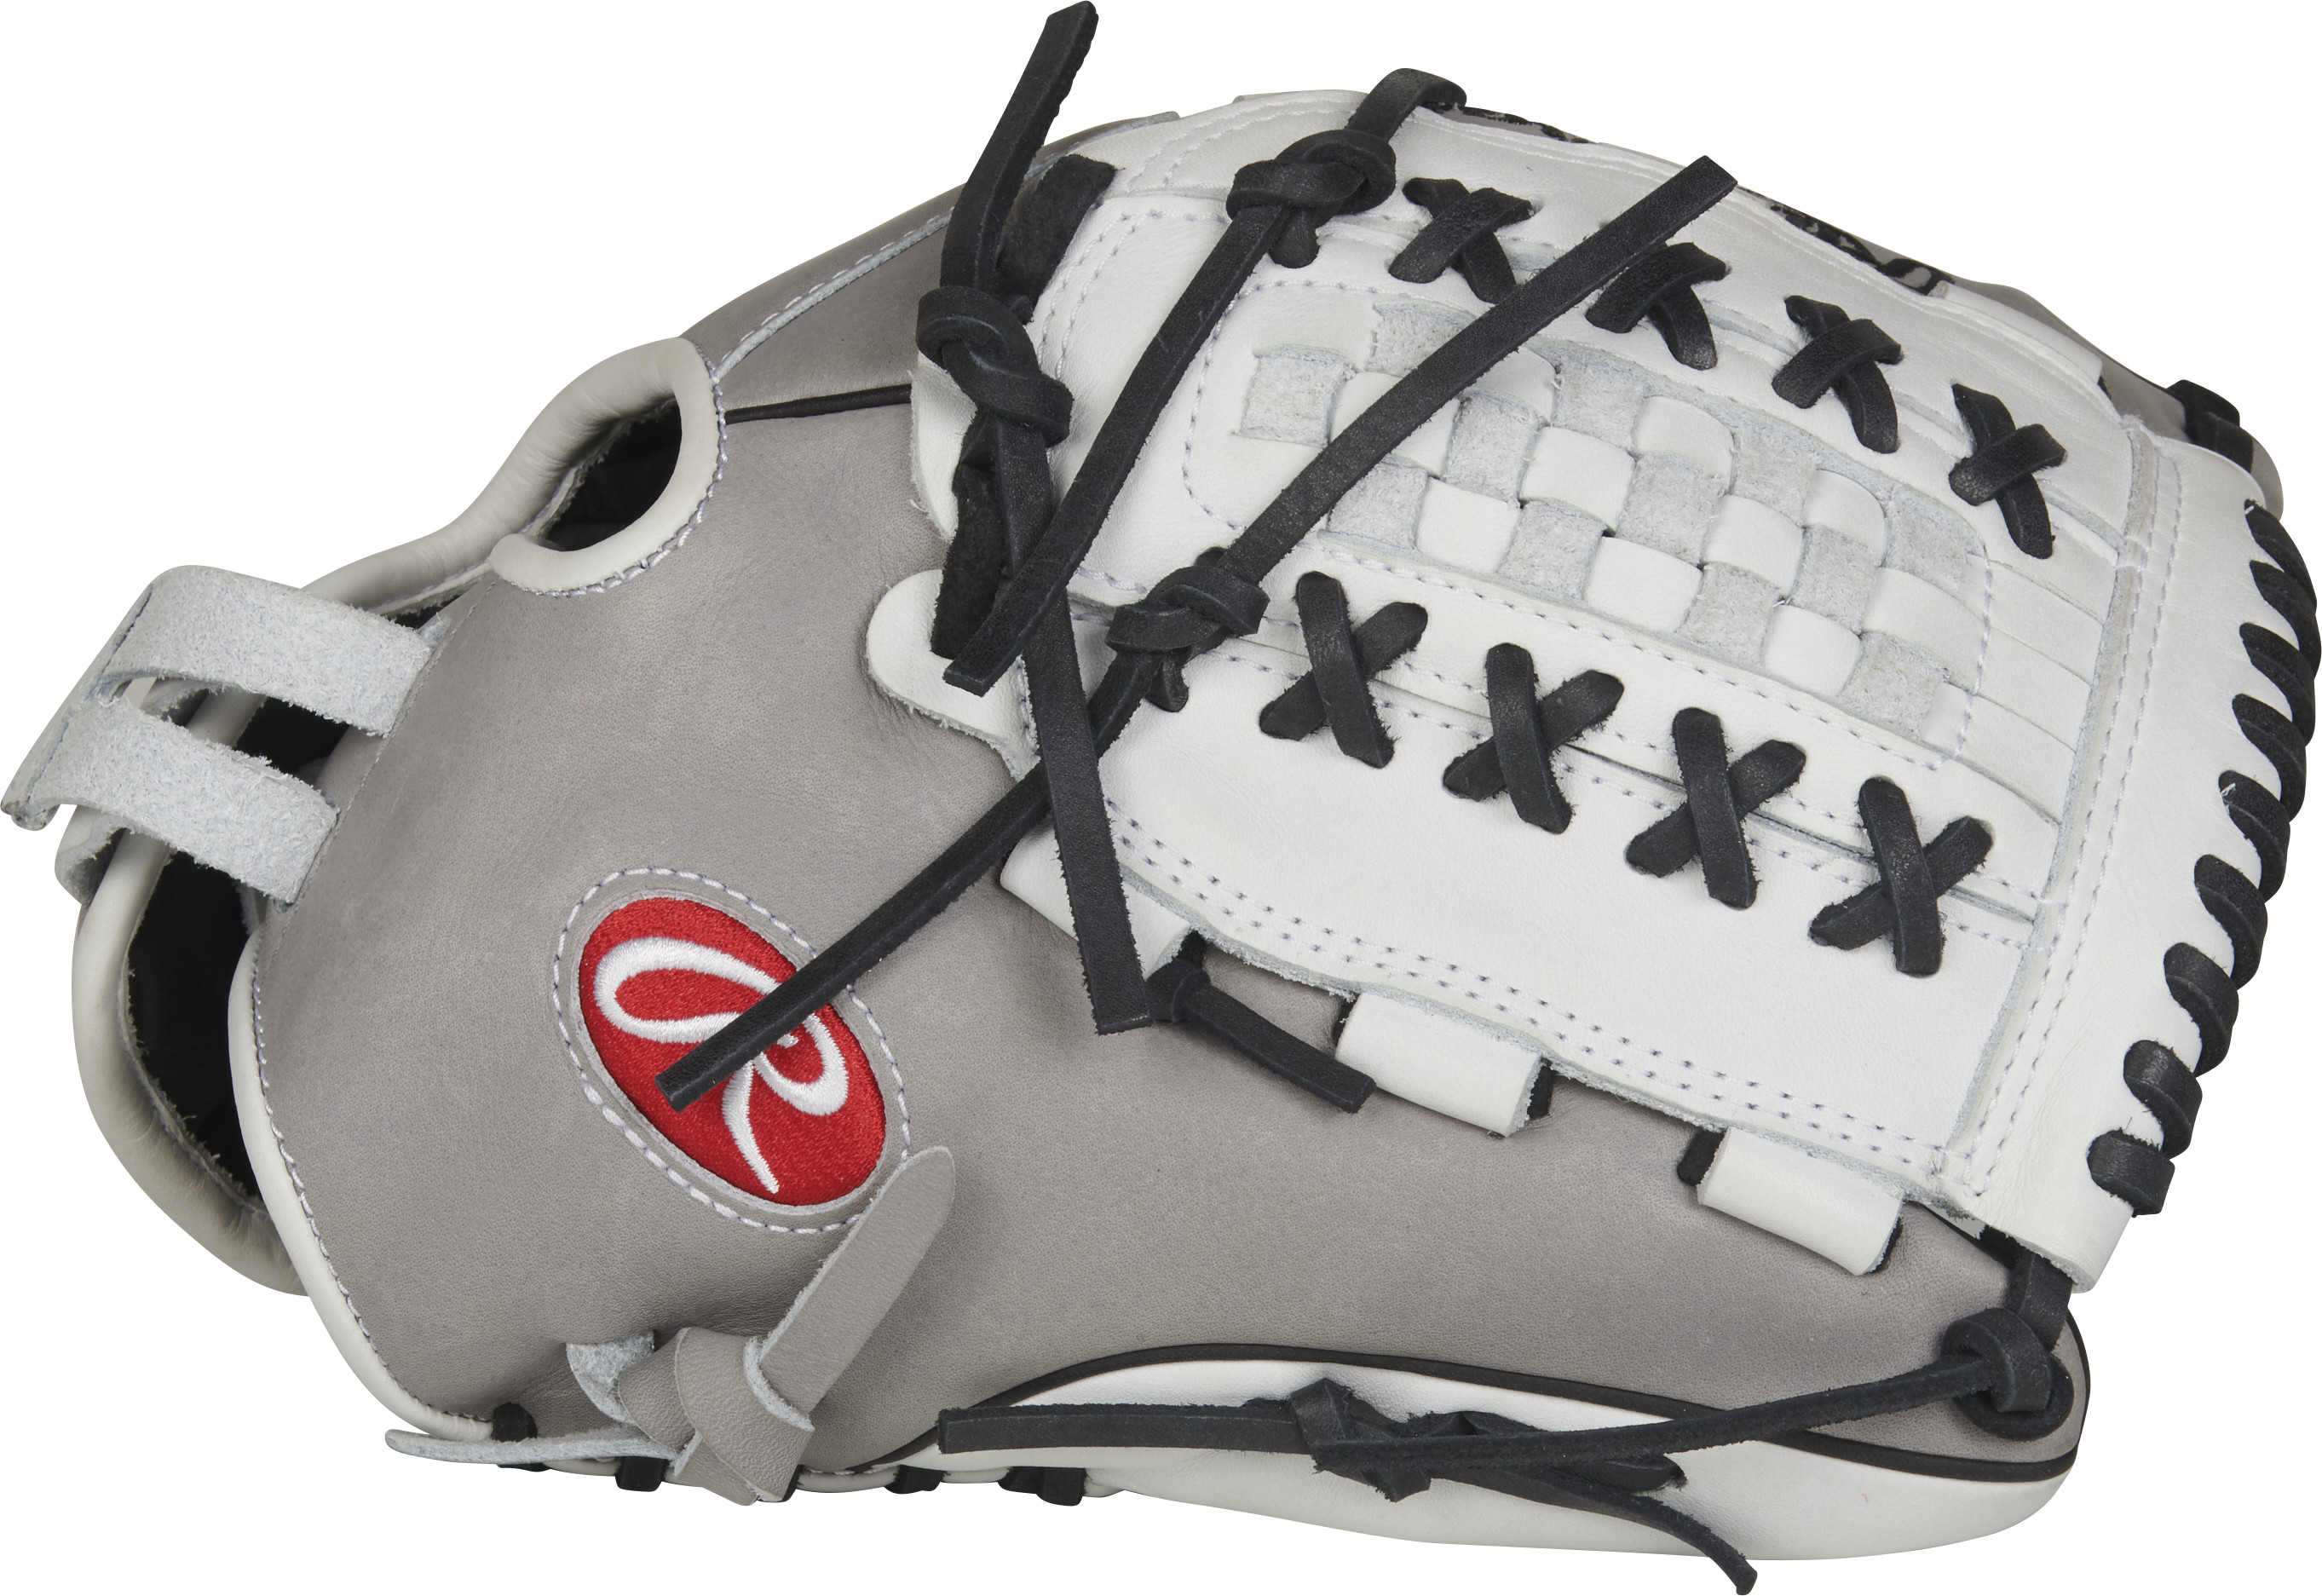 http://www.bestbatdeals.com/images/gloves/rawlings/PRO125SB-18GW-3.jpg